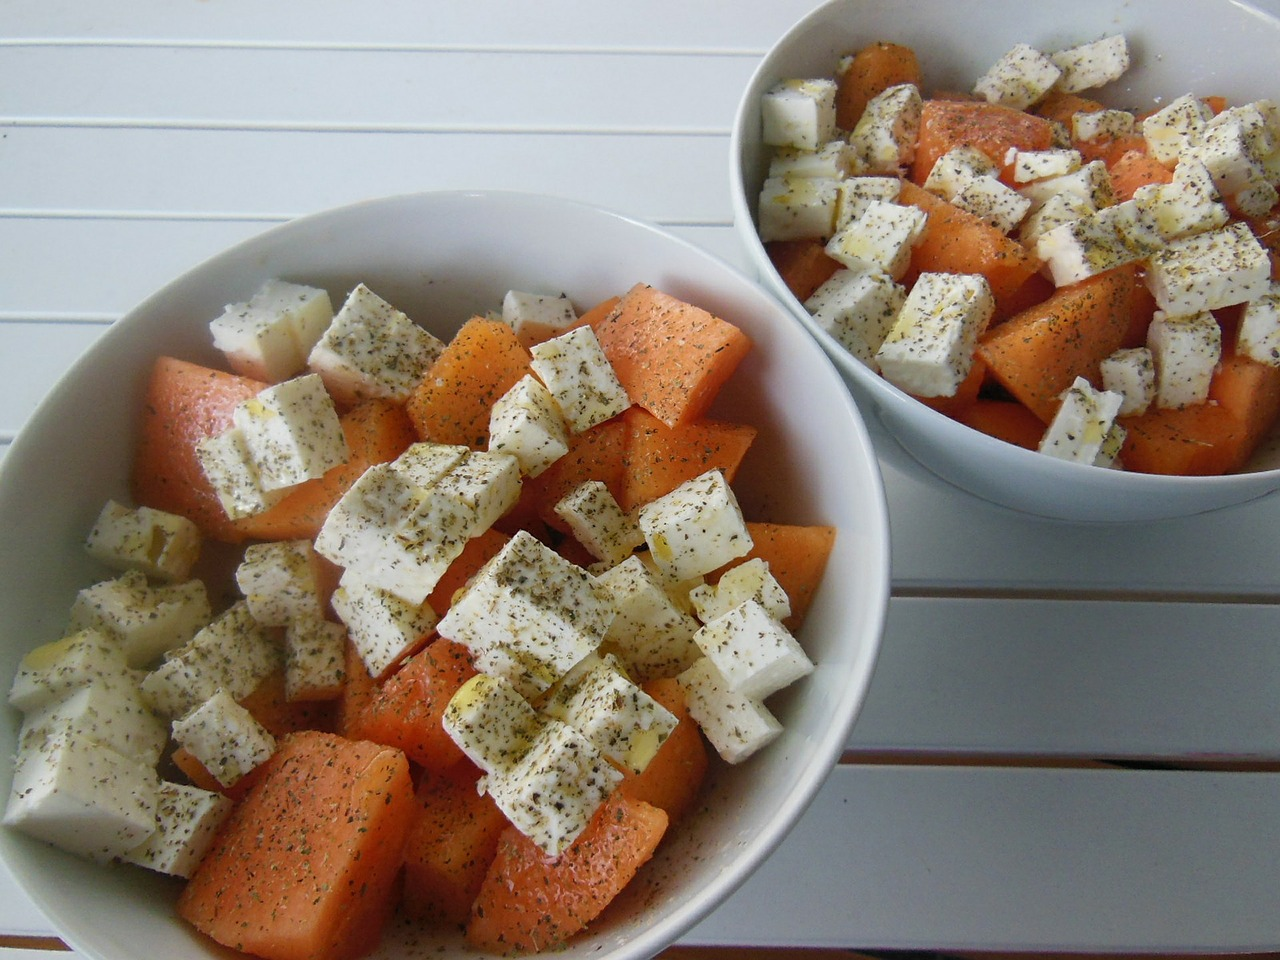 Feta cheese with melons